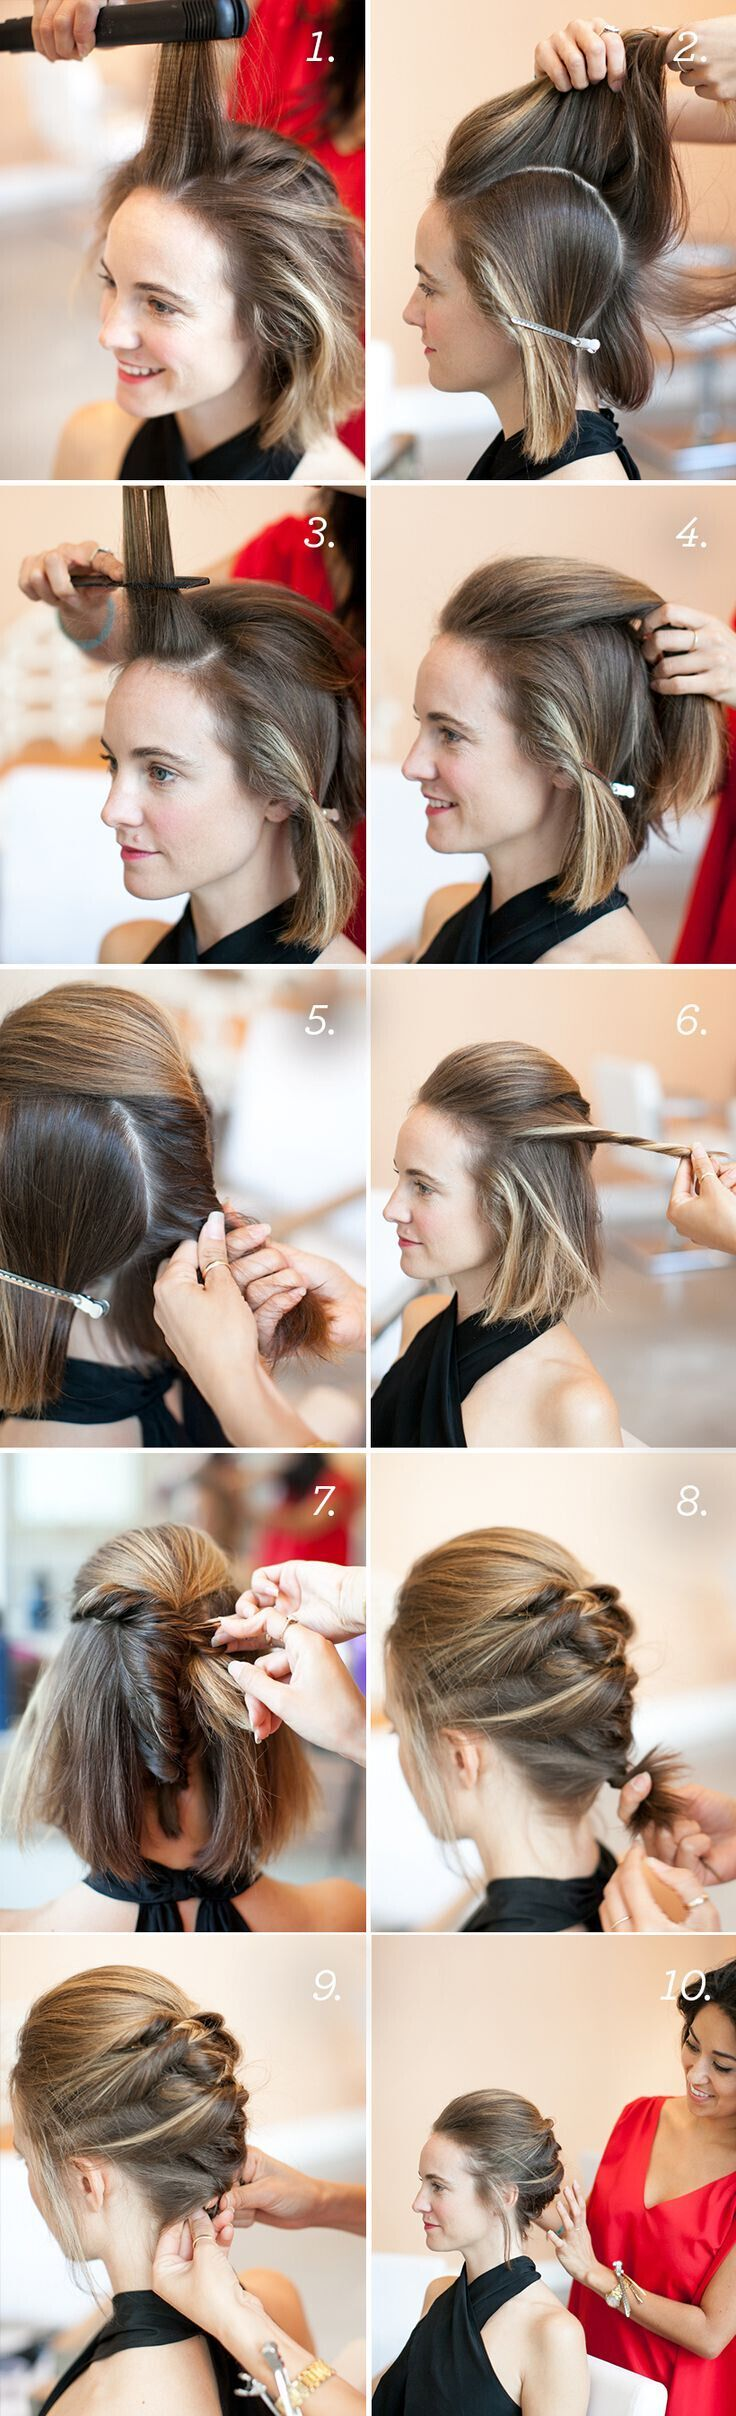 Textured French Braided Updo for Short Hair